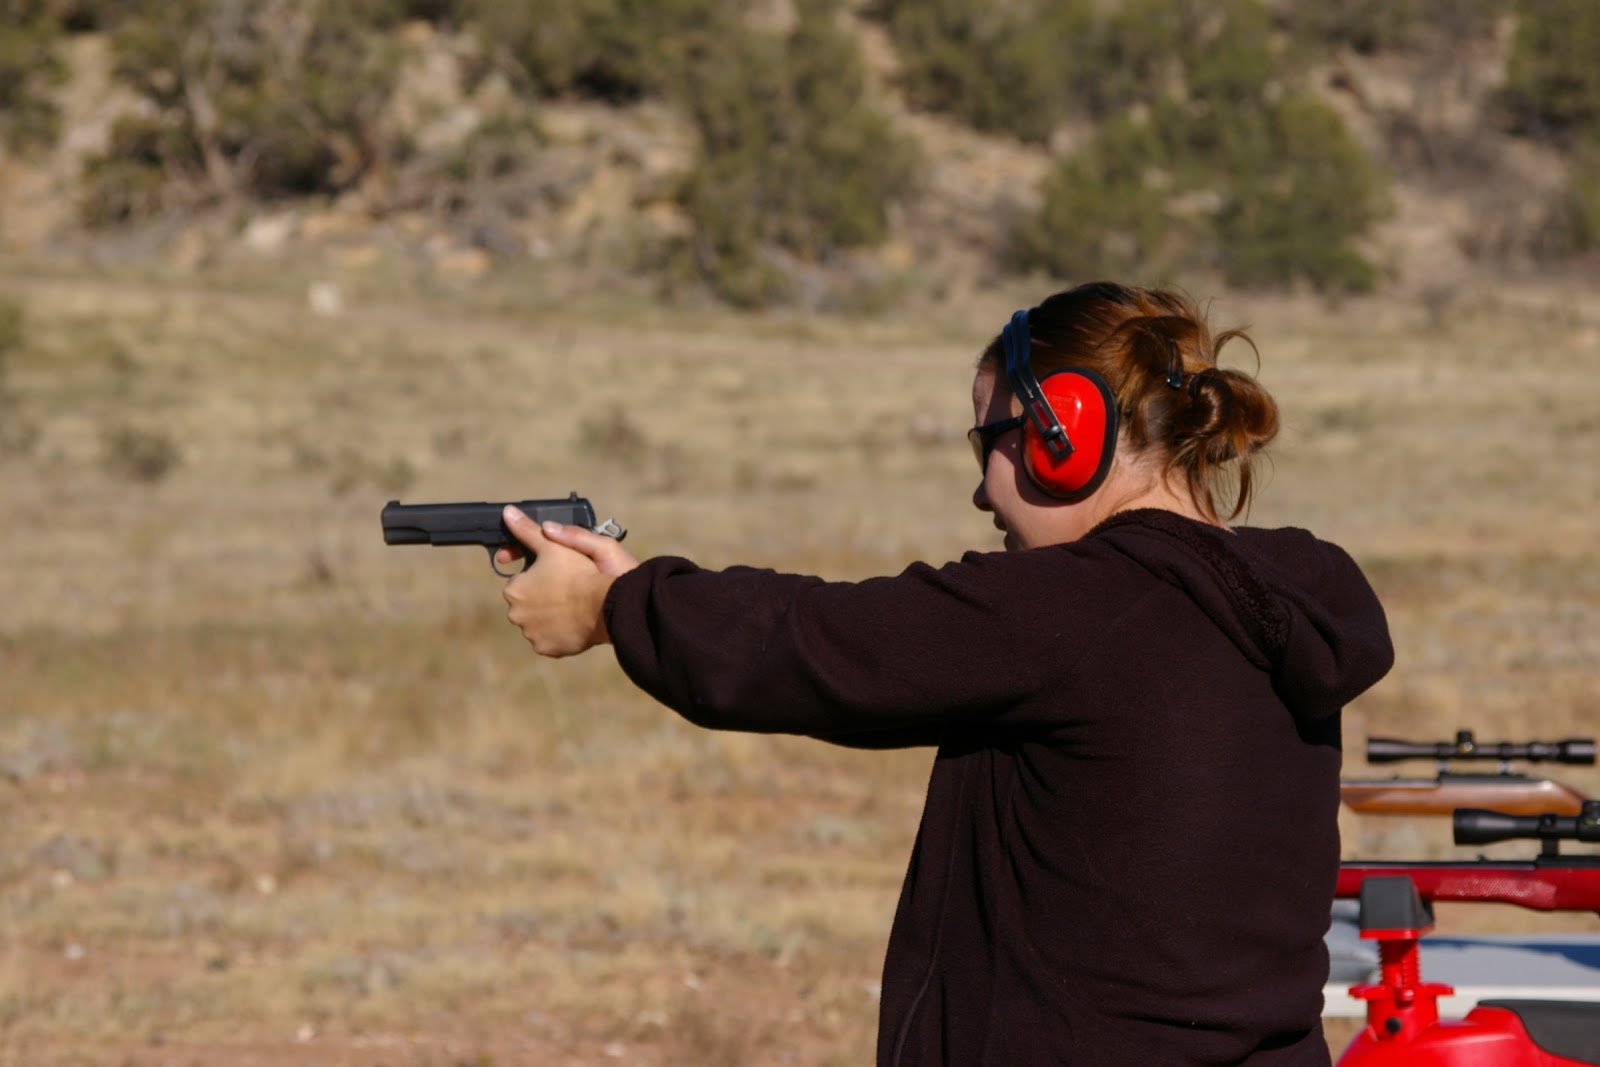 Girls In The Outdoors: New Targets & A New Shooter